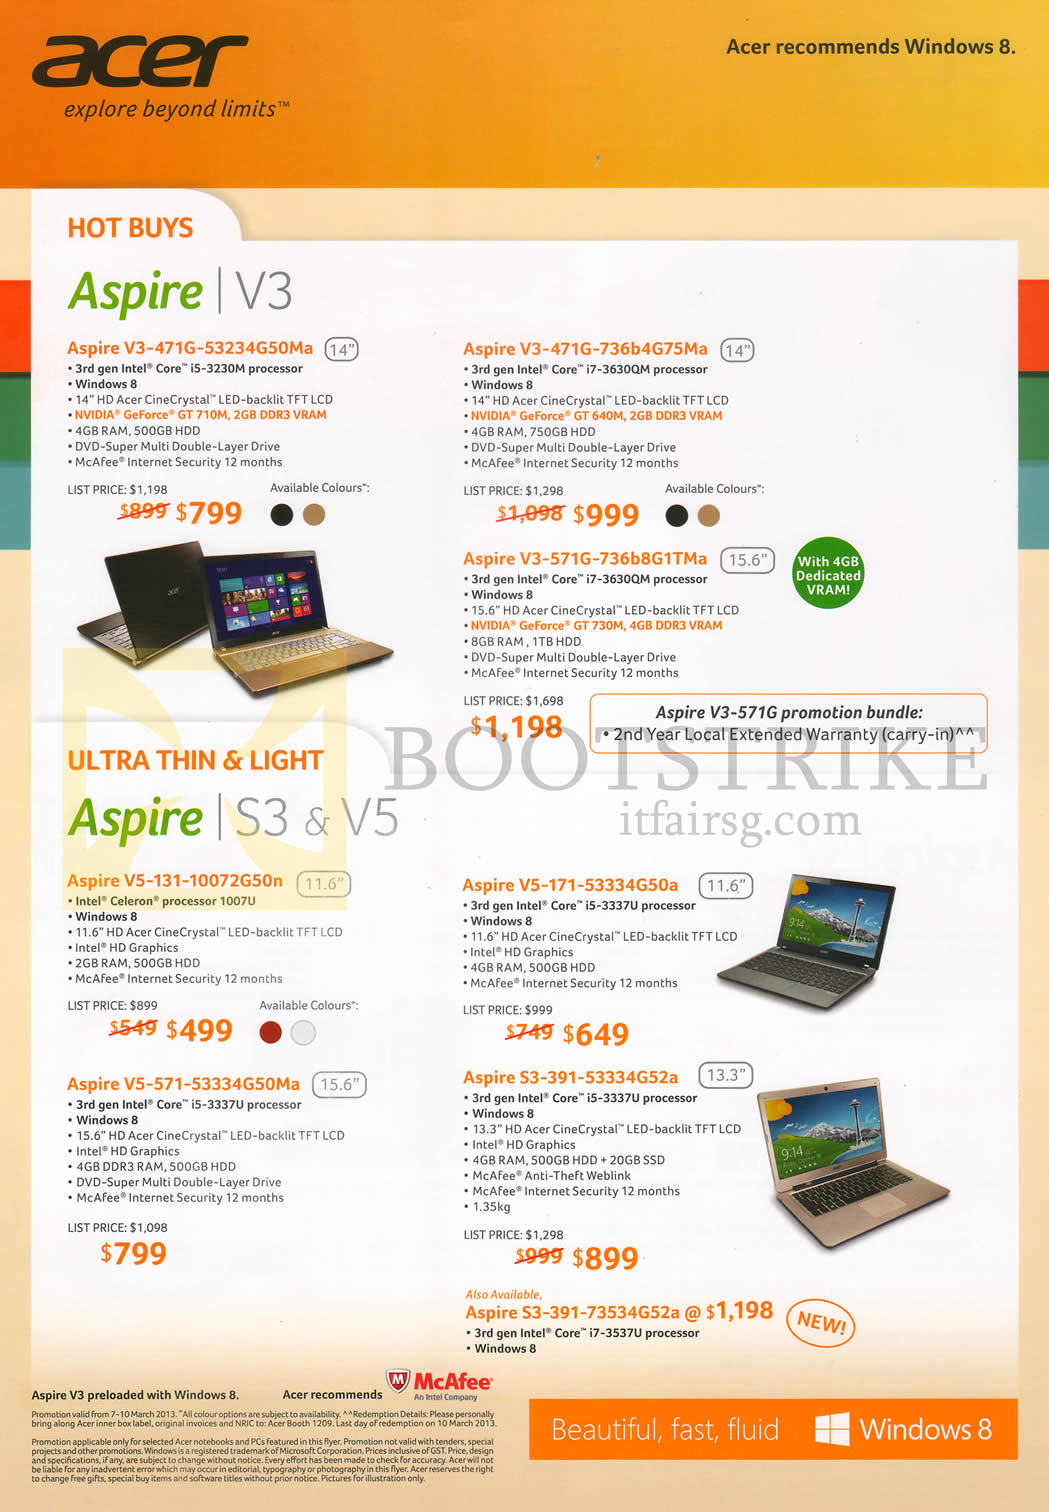 IT SHOW 2013 price list image brochure of Acer Notebooks Aspire V3-471G-53234G50Ma, 736b4G75Ma, V3-571G-736b8G1TMa, Aspire V5-131-10072G50n, V5-571-53334G50Ma, V5-171-53334G50a, S3-391-53334G52a